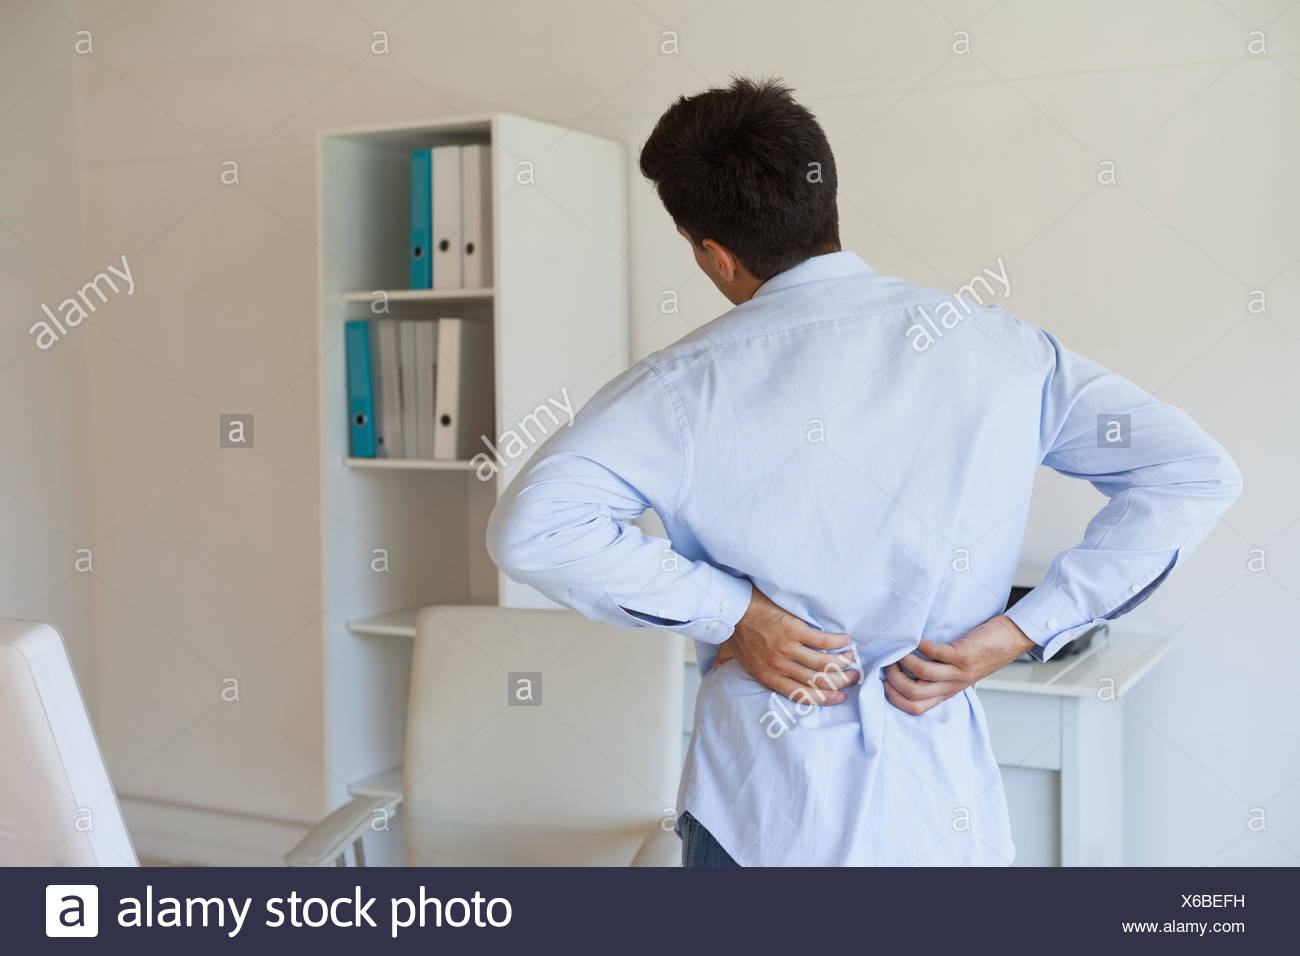 Casual businessman touching his sore back - Stock Image